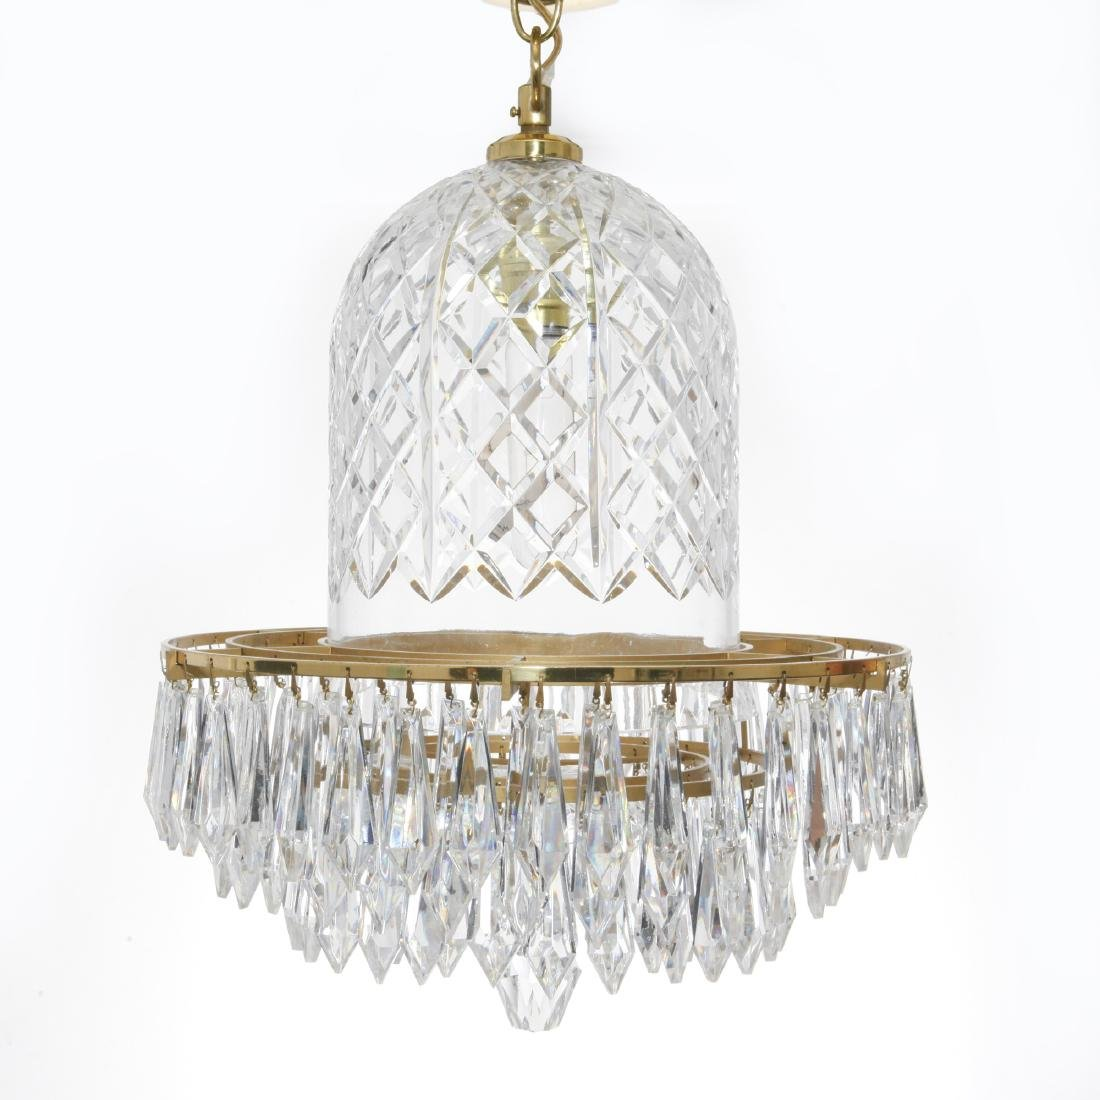 WATERFORD CRYSTAL AND BRASS BELL CHANDELIER